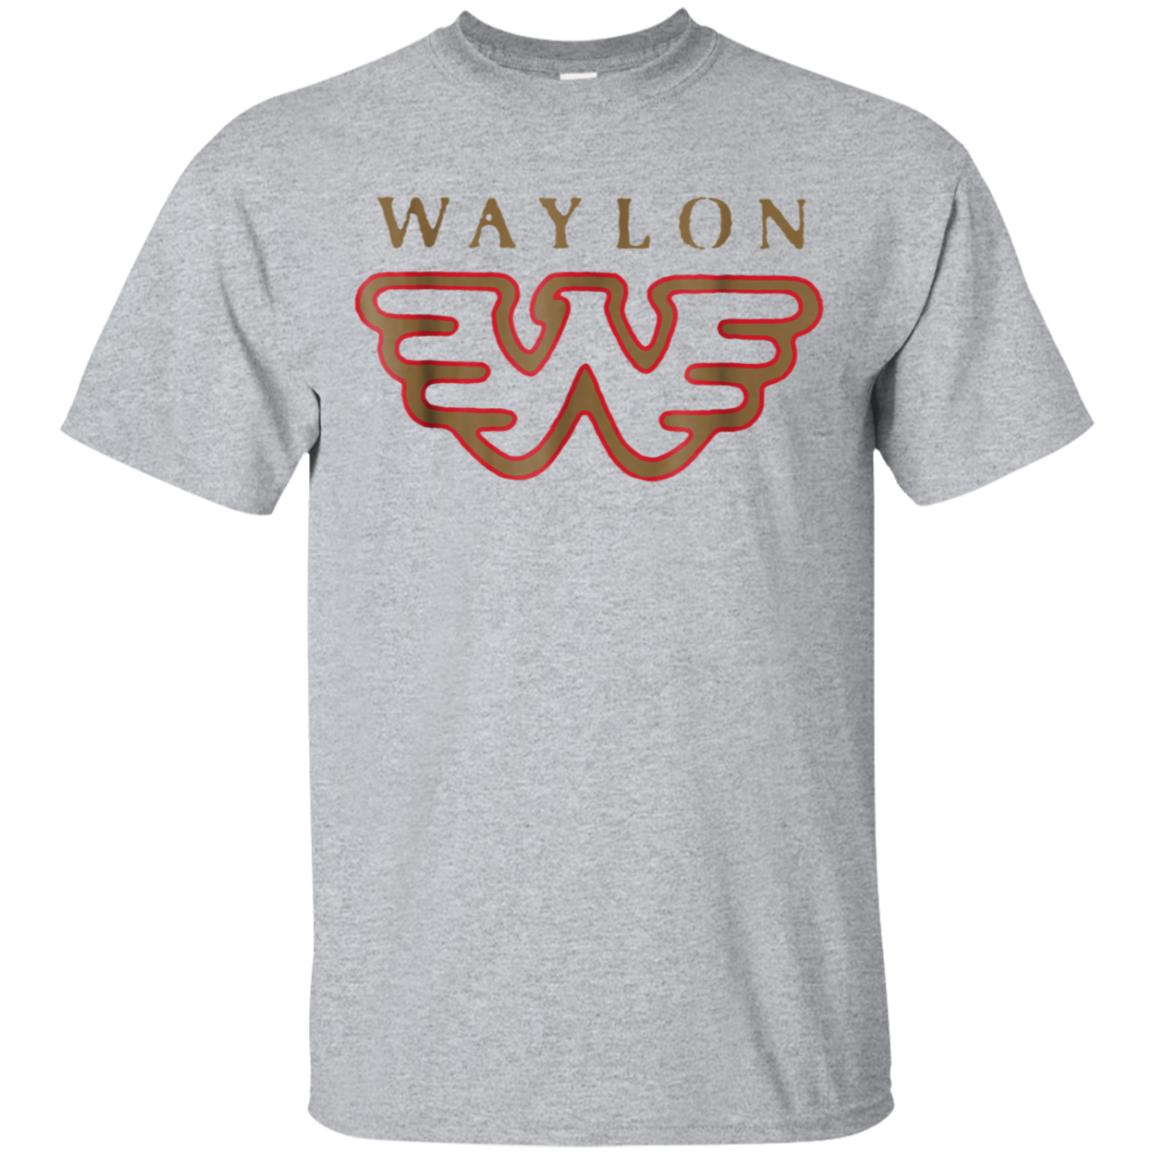 Waylon Jennings Flying W Logo Shirt - Official Merch 99promocode